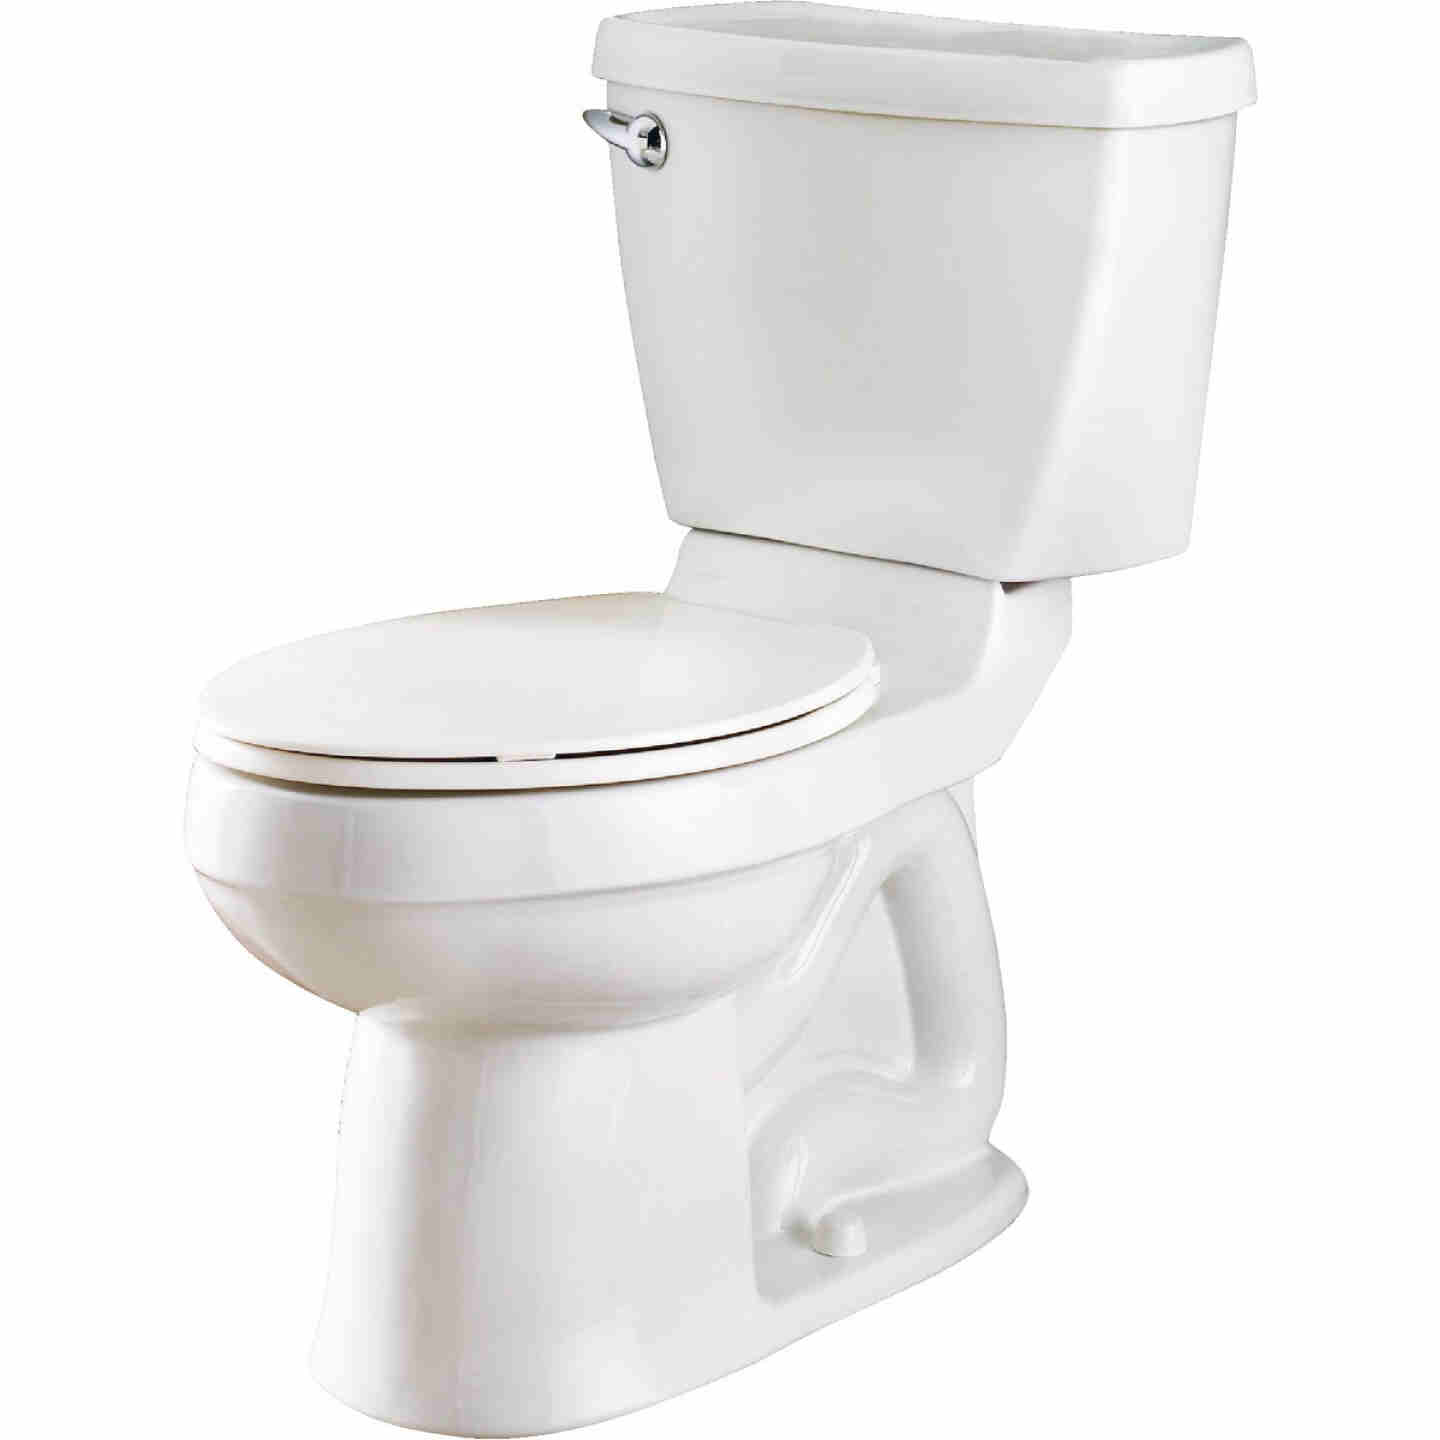 American Standard Champion 4 Right Height White Elongated Bowl 1.6 GPF Toilet Image 4